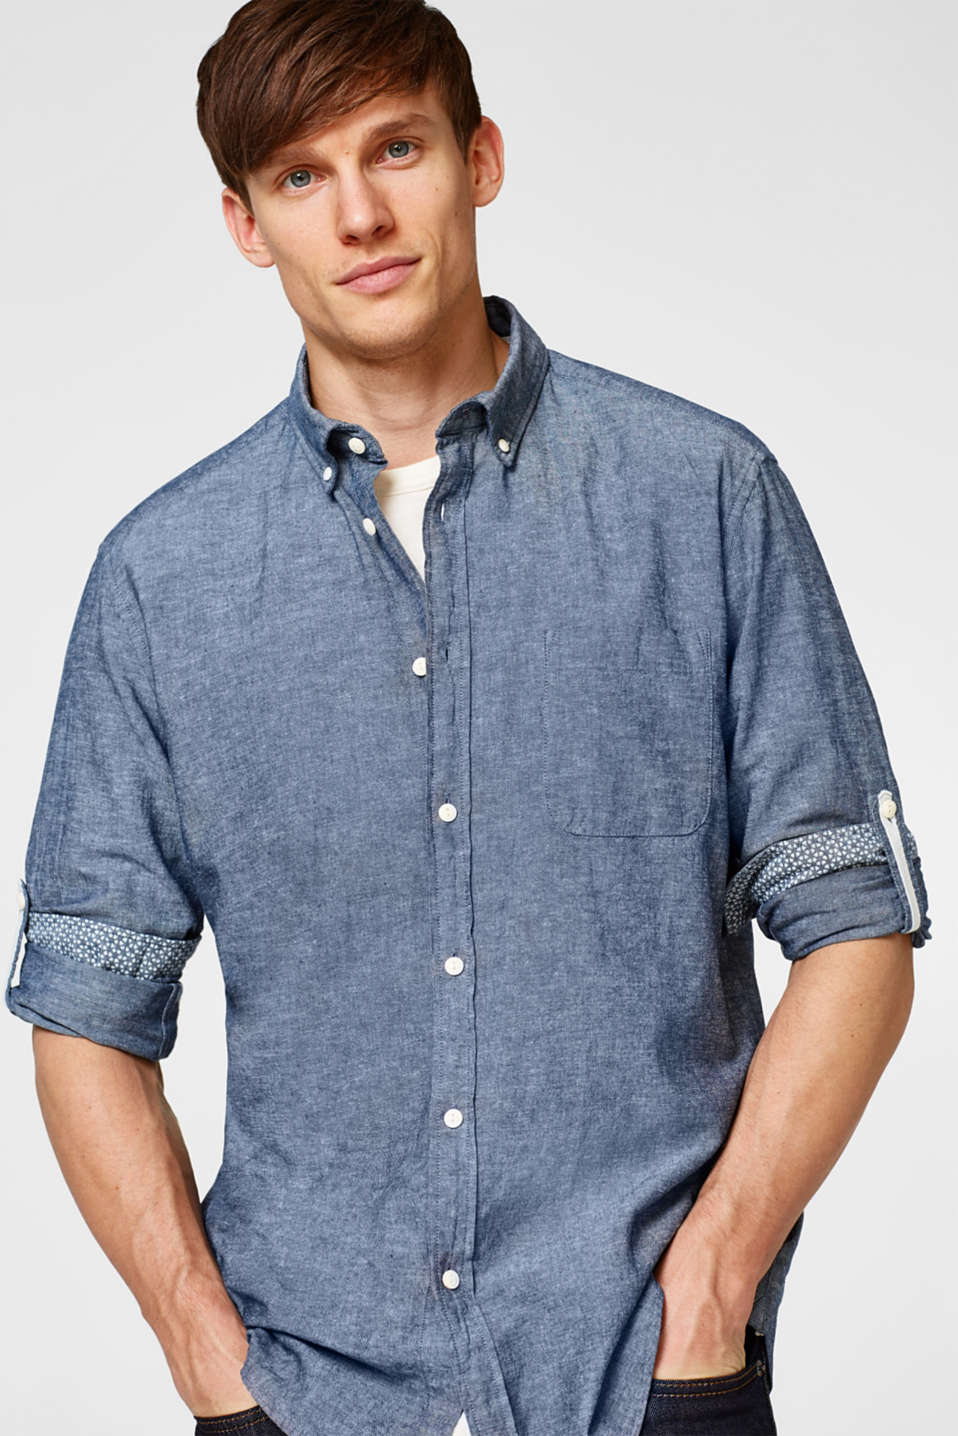 Esprit - Linen blend shirt with turn-up sleeves